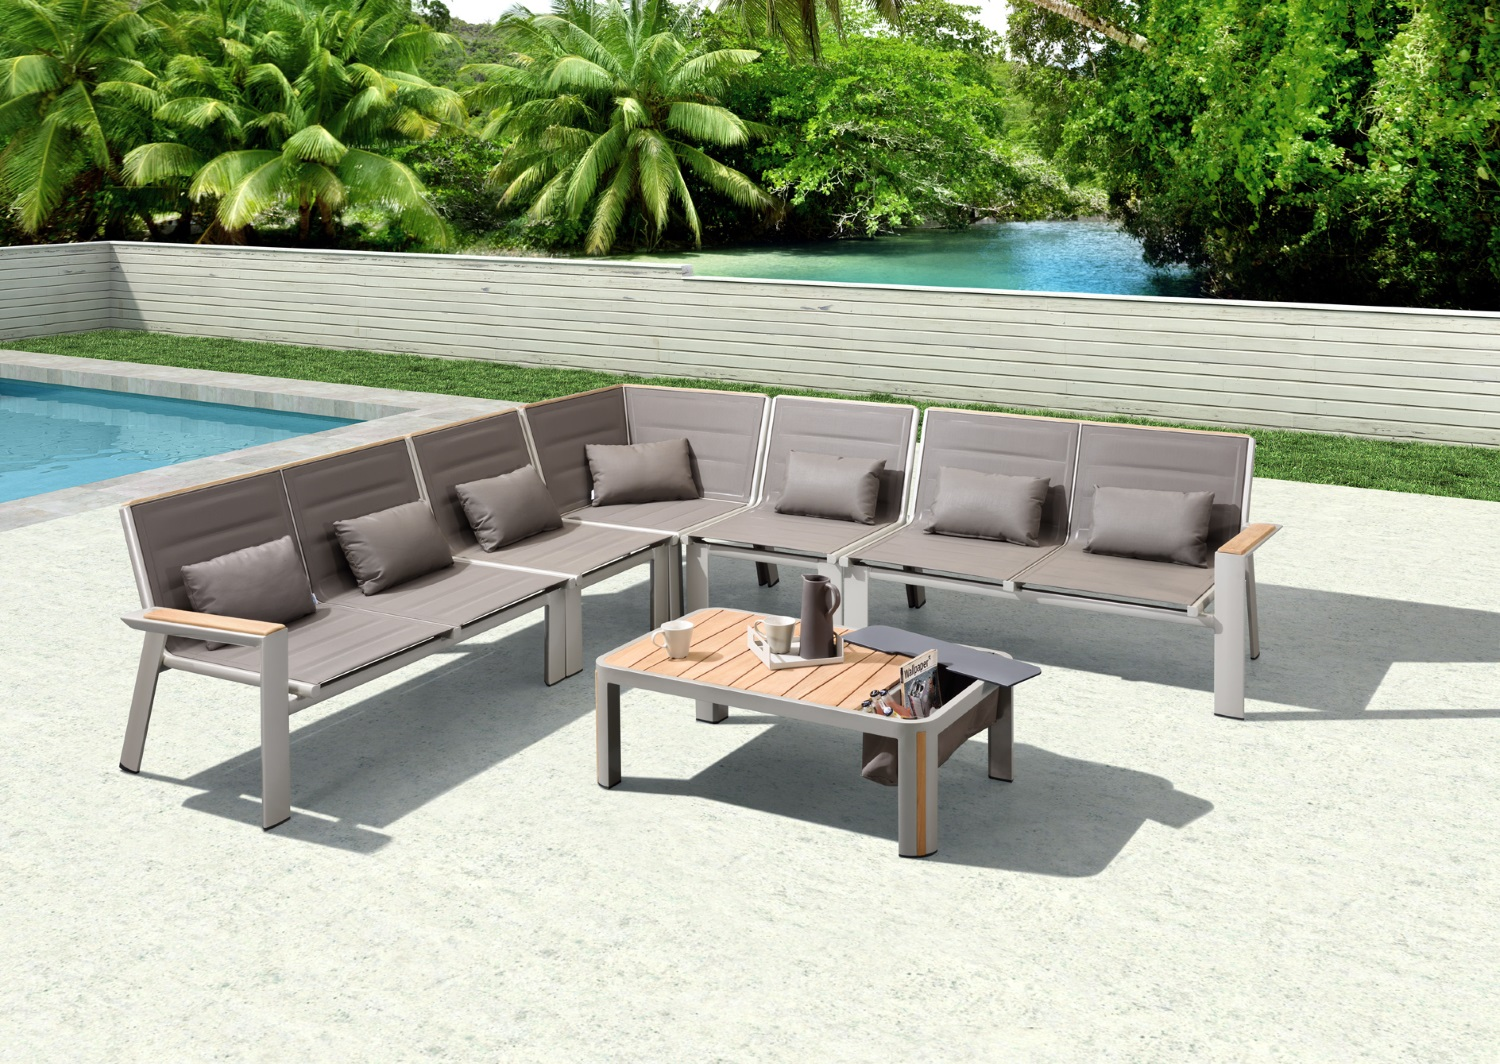 Geneva contemporary style sectional can be customized to fit any space. Teak top powder coated aluminum Coffee table features built-in ice bucket for ease of entertaining.